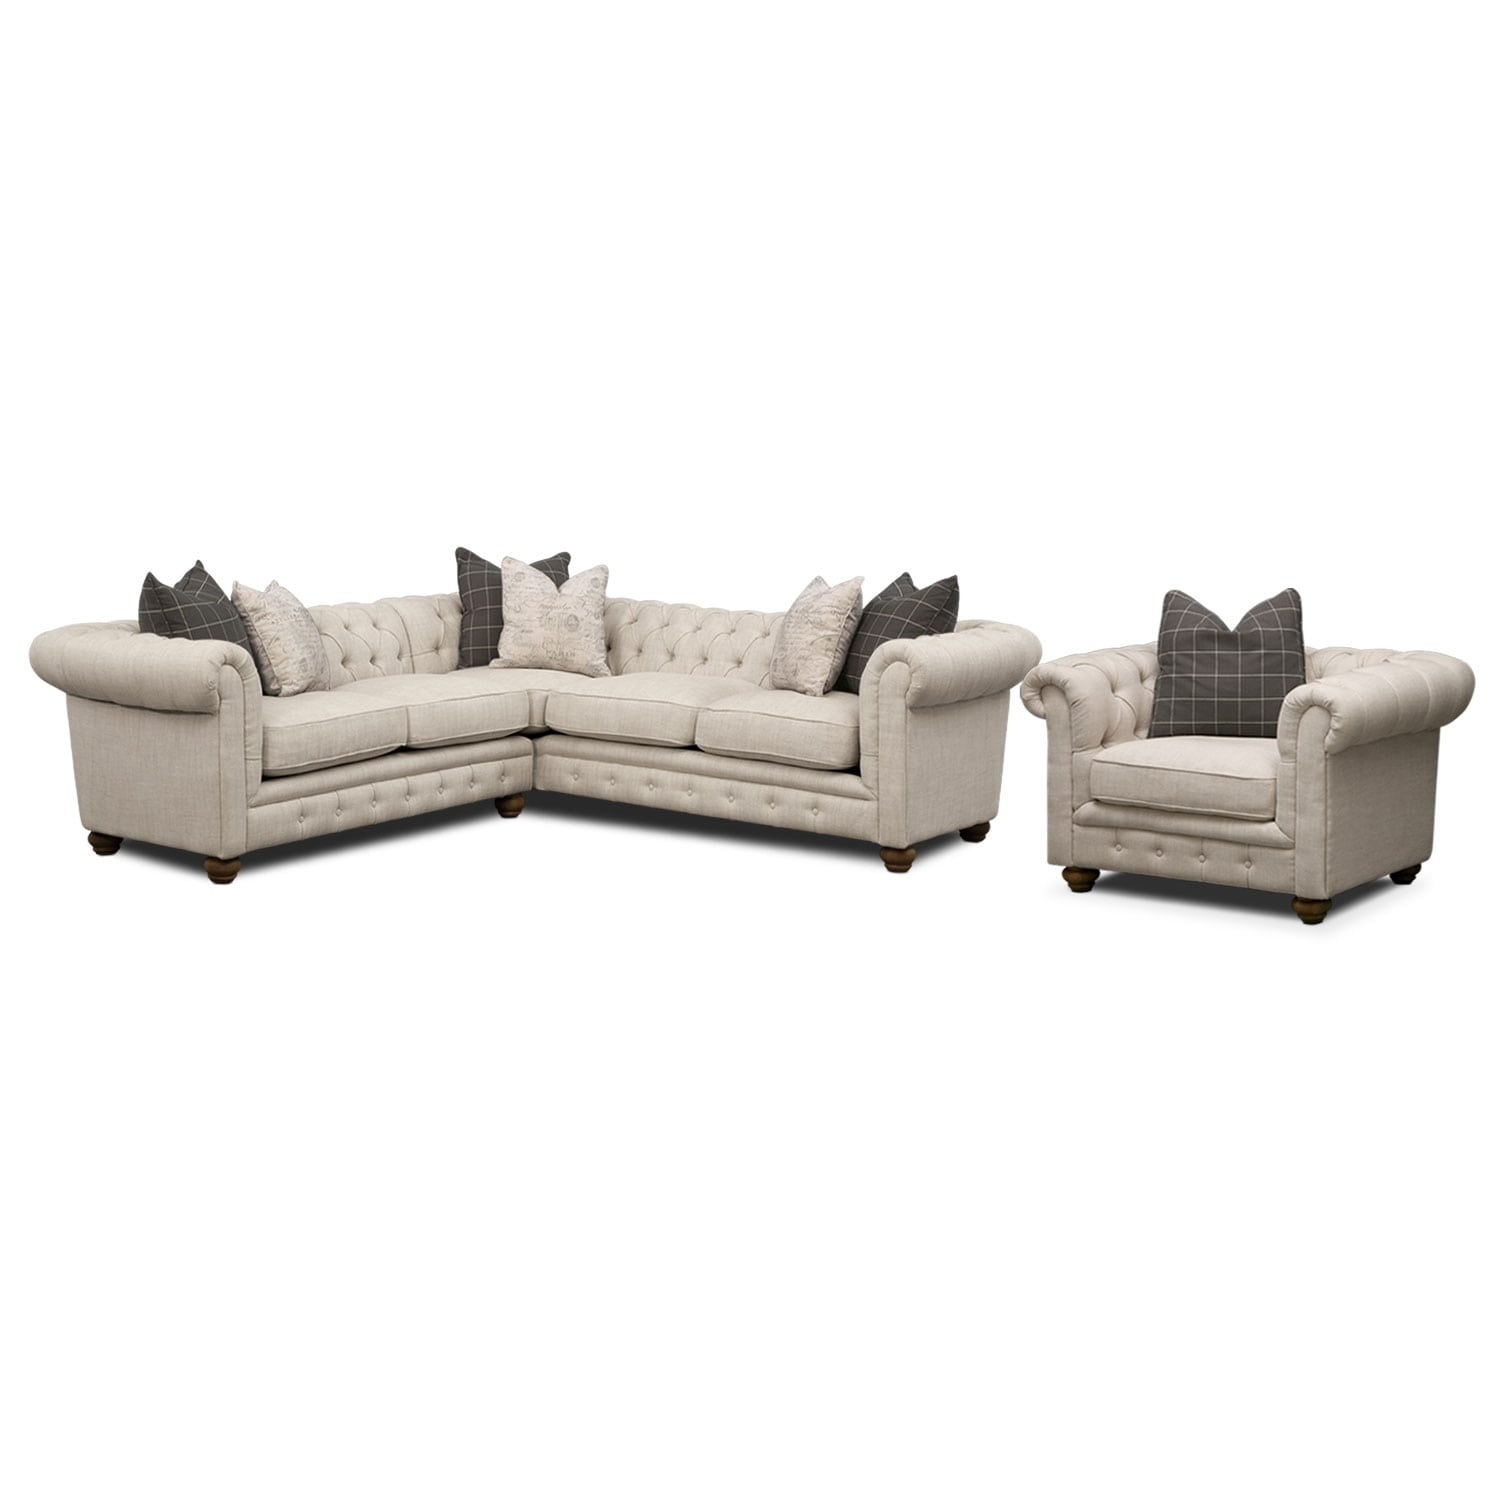 Madeline 2-Piece Sectional and Chair Set - Beige